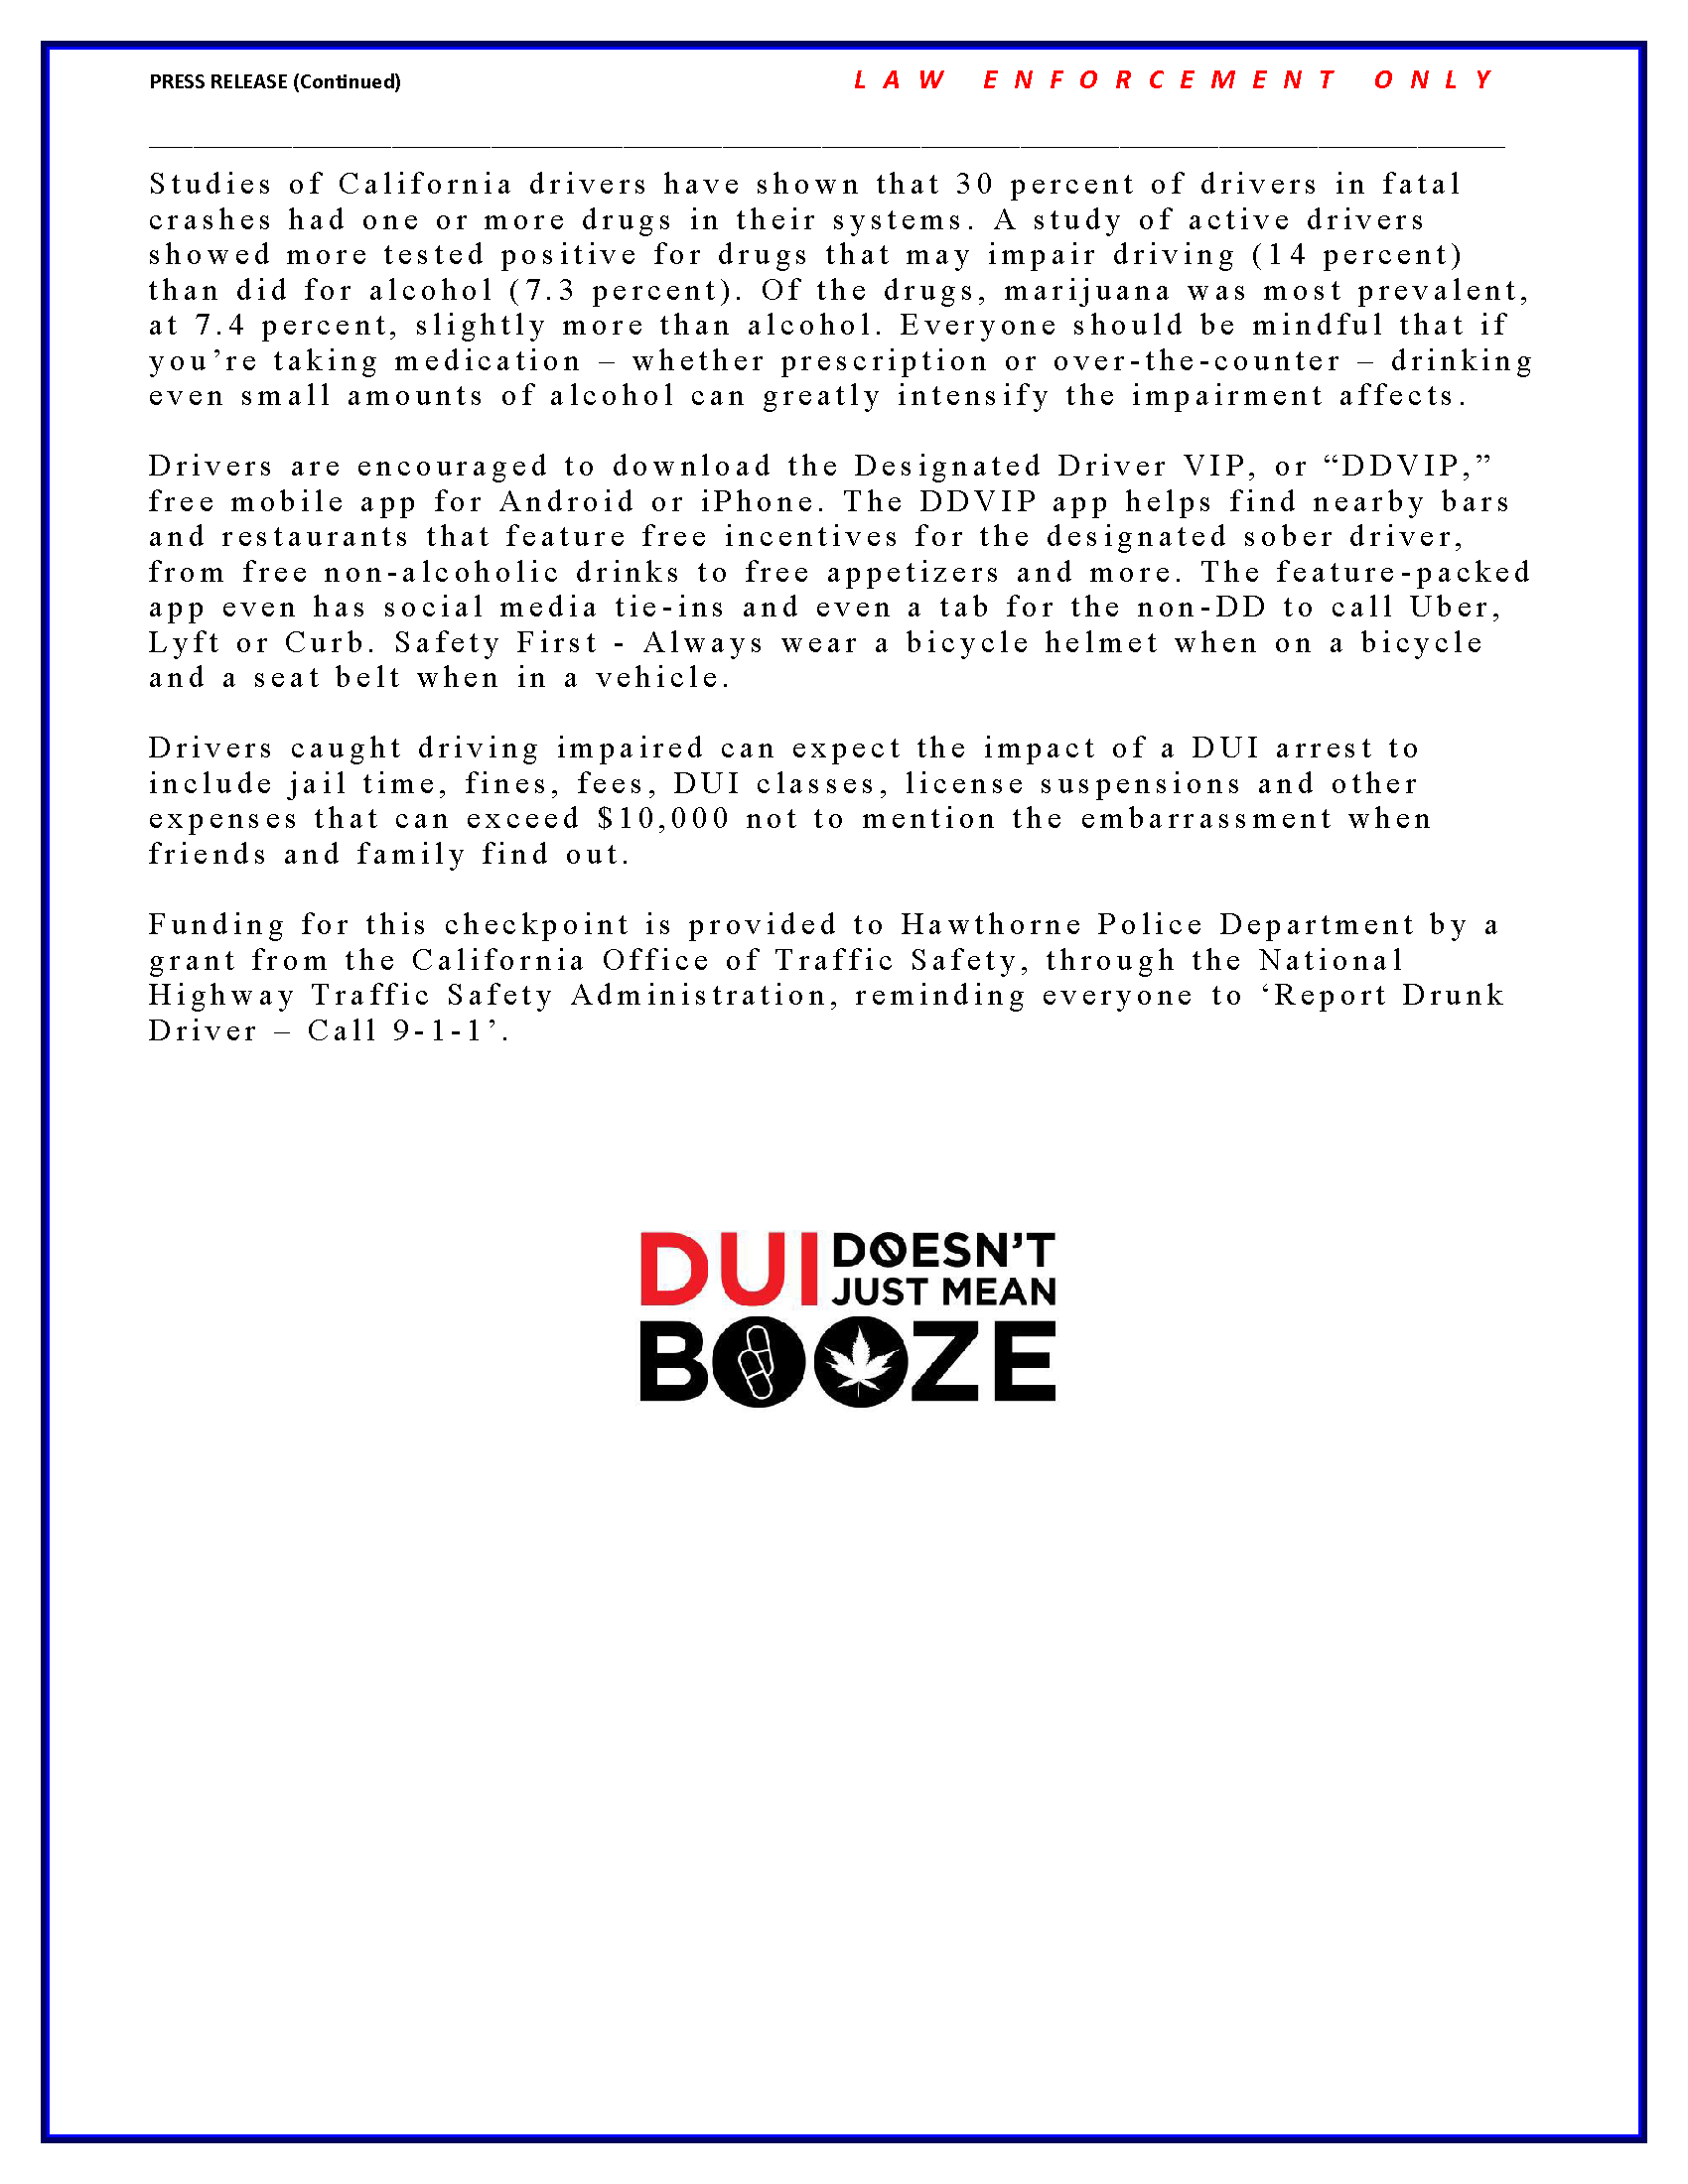 DUI Checkpoint Press Release 05-04-18_Page_2.png